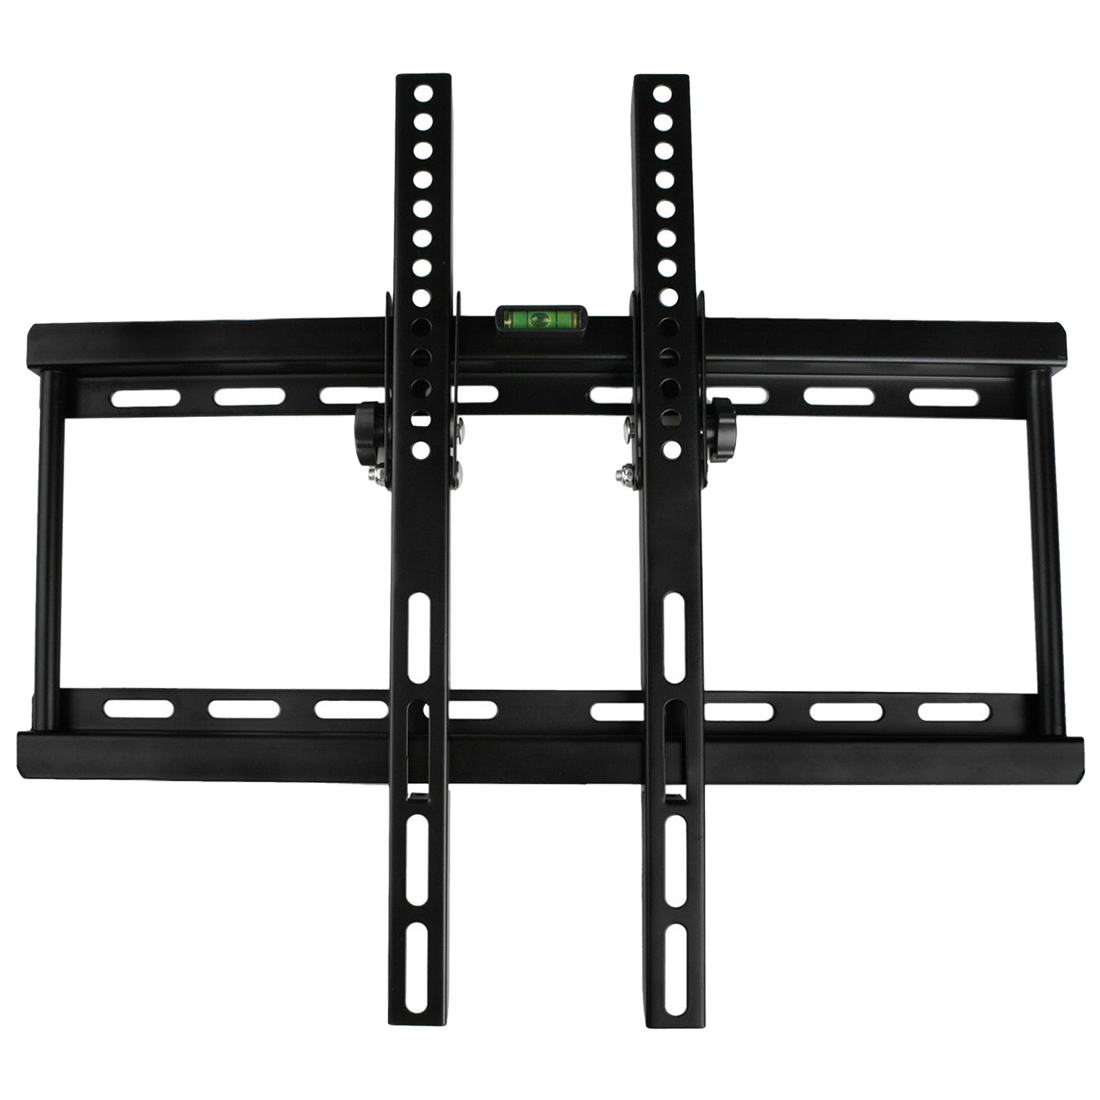 Home Improvement Bathroom Hardware Cooperative Ksol Flat Slim Tv Wall Mount Bracket 23 28 30 32 40 42 48 50 55 Inch Led Lcd Plasma Beneficial To Essential Medulla